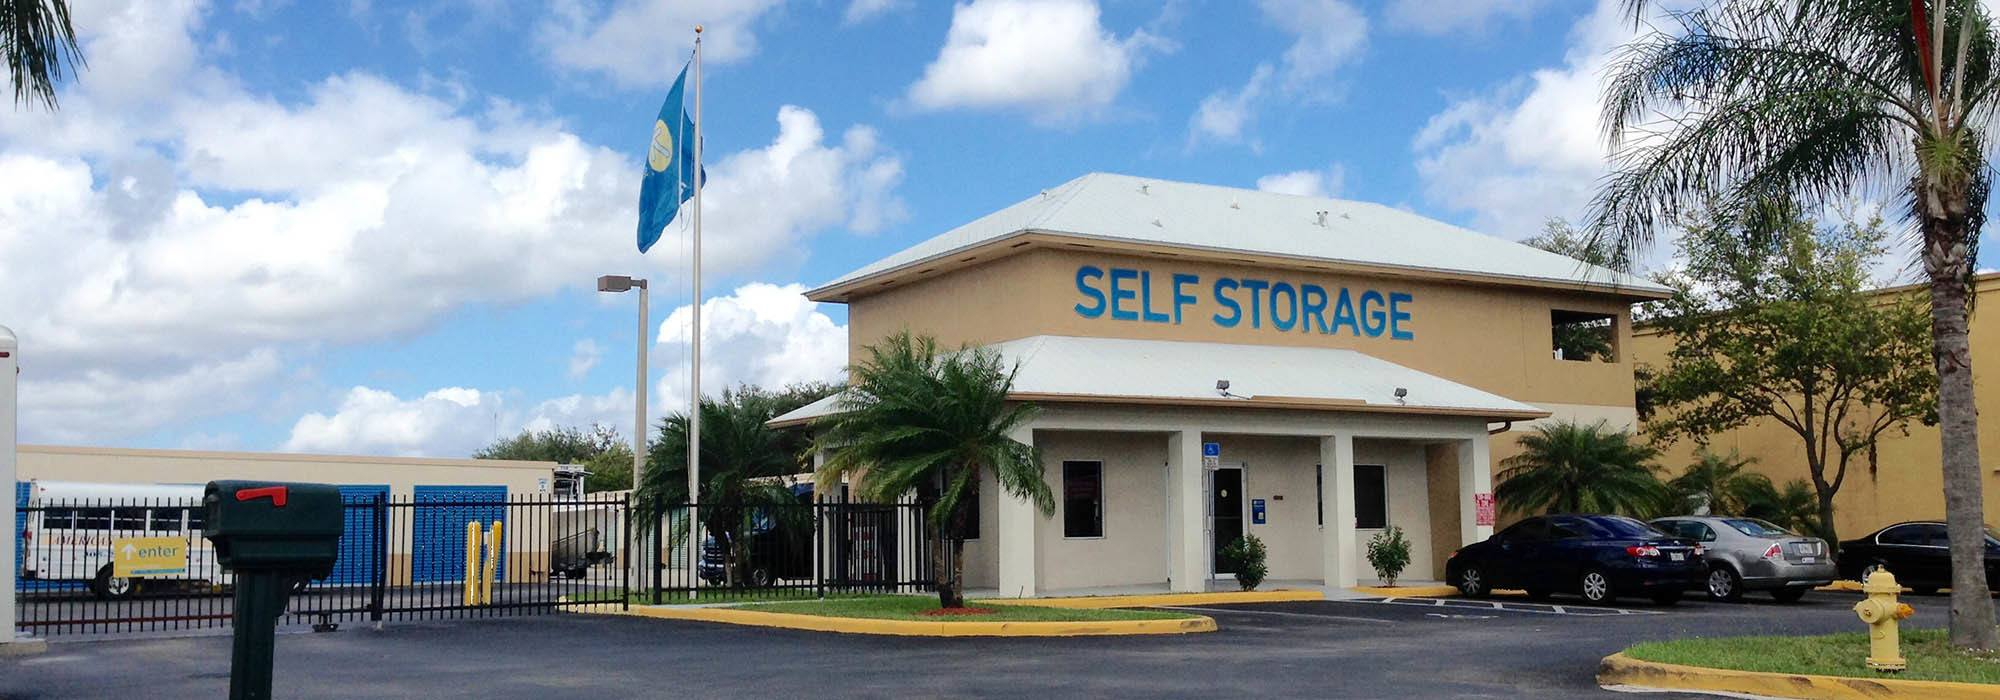 Self storage in Florida City FL